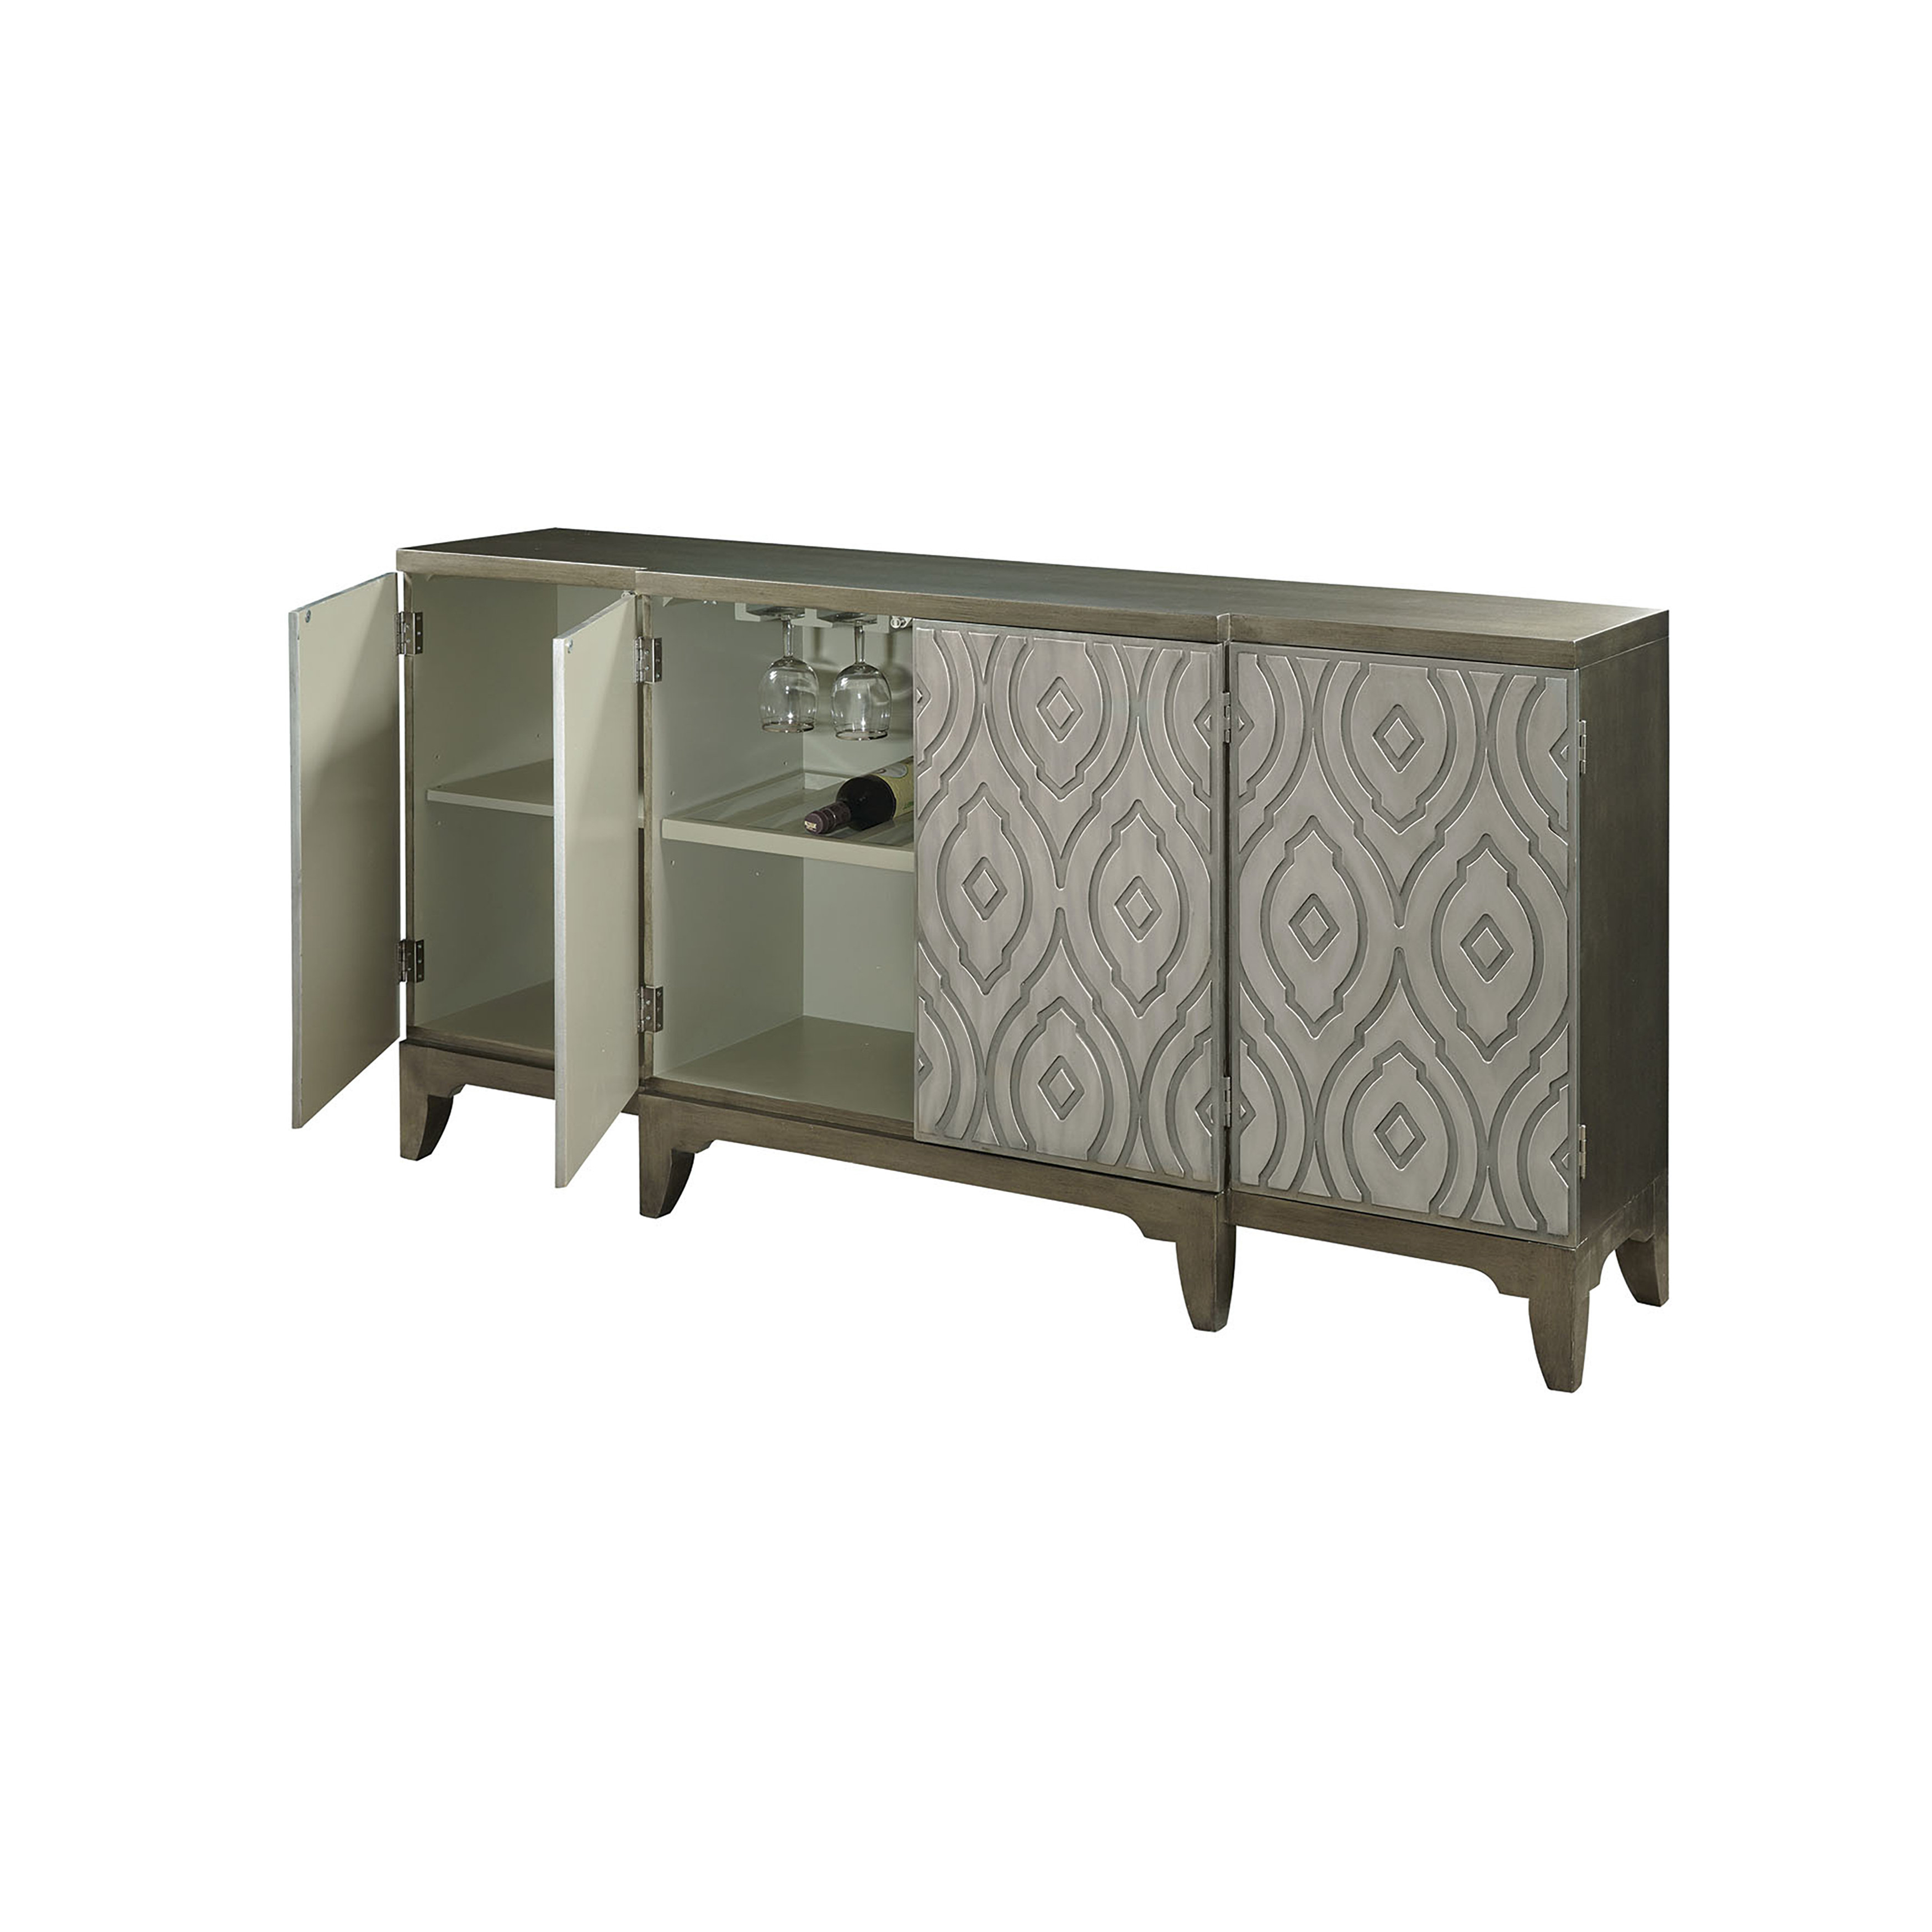 Kattie 4 Door Accent Cabinet Intended For Best And Newest Kattie 4 Door Cabinets (View 7 of 20)